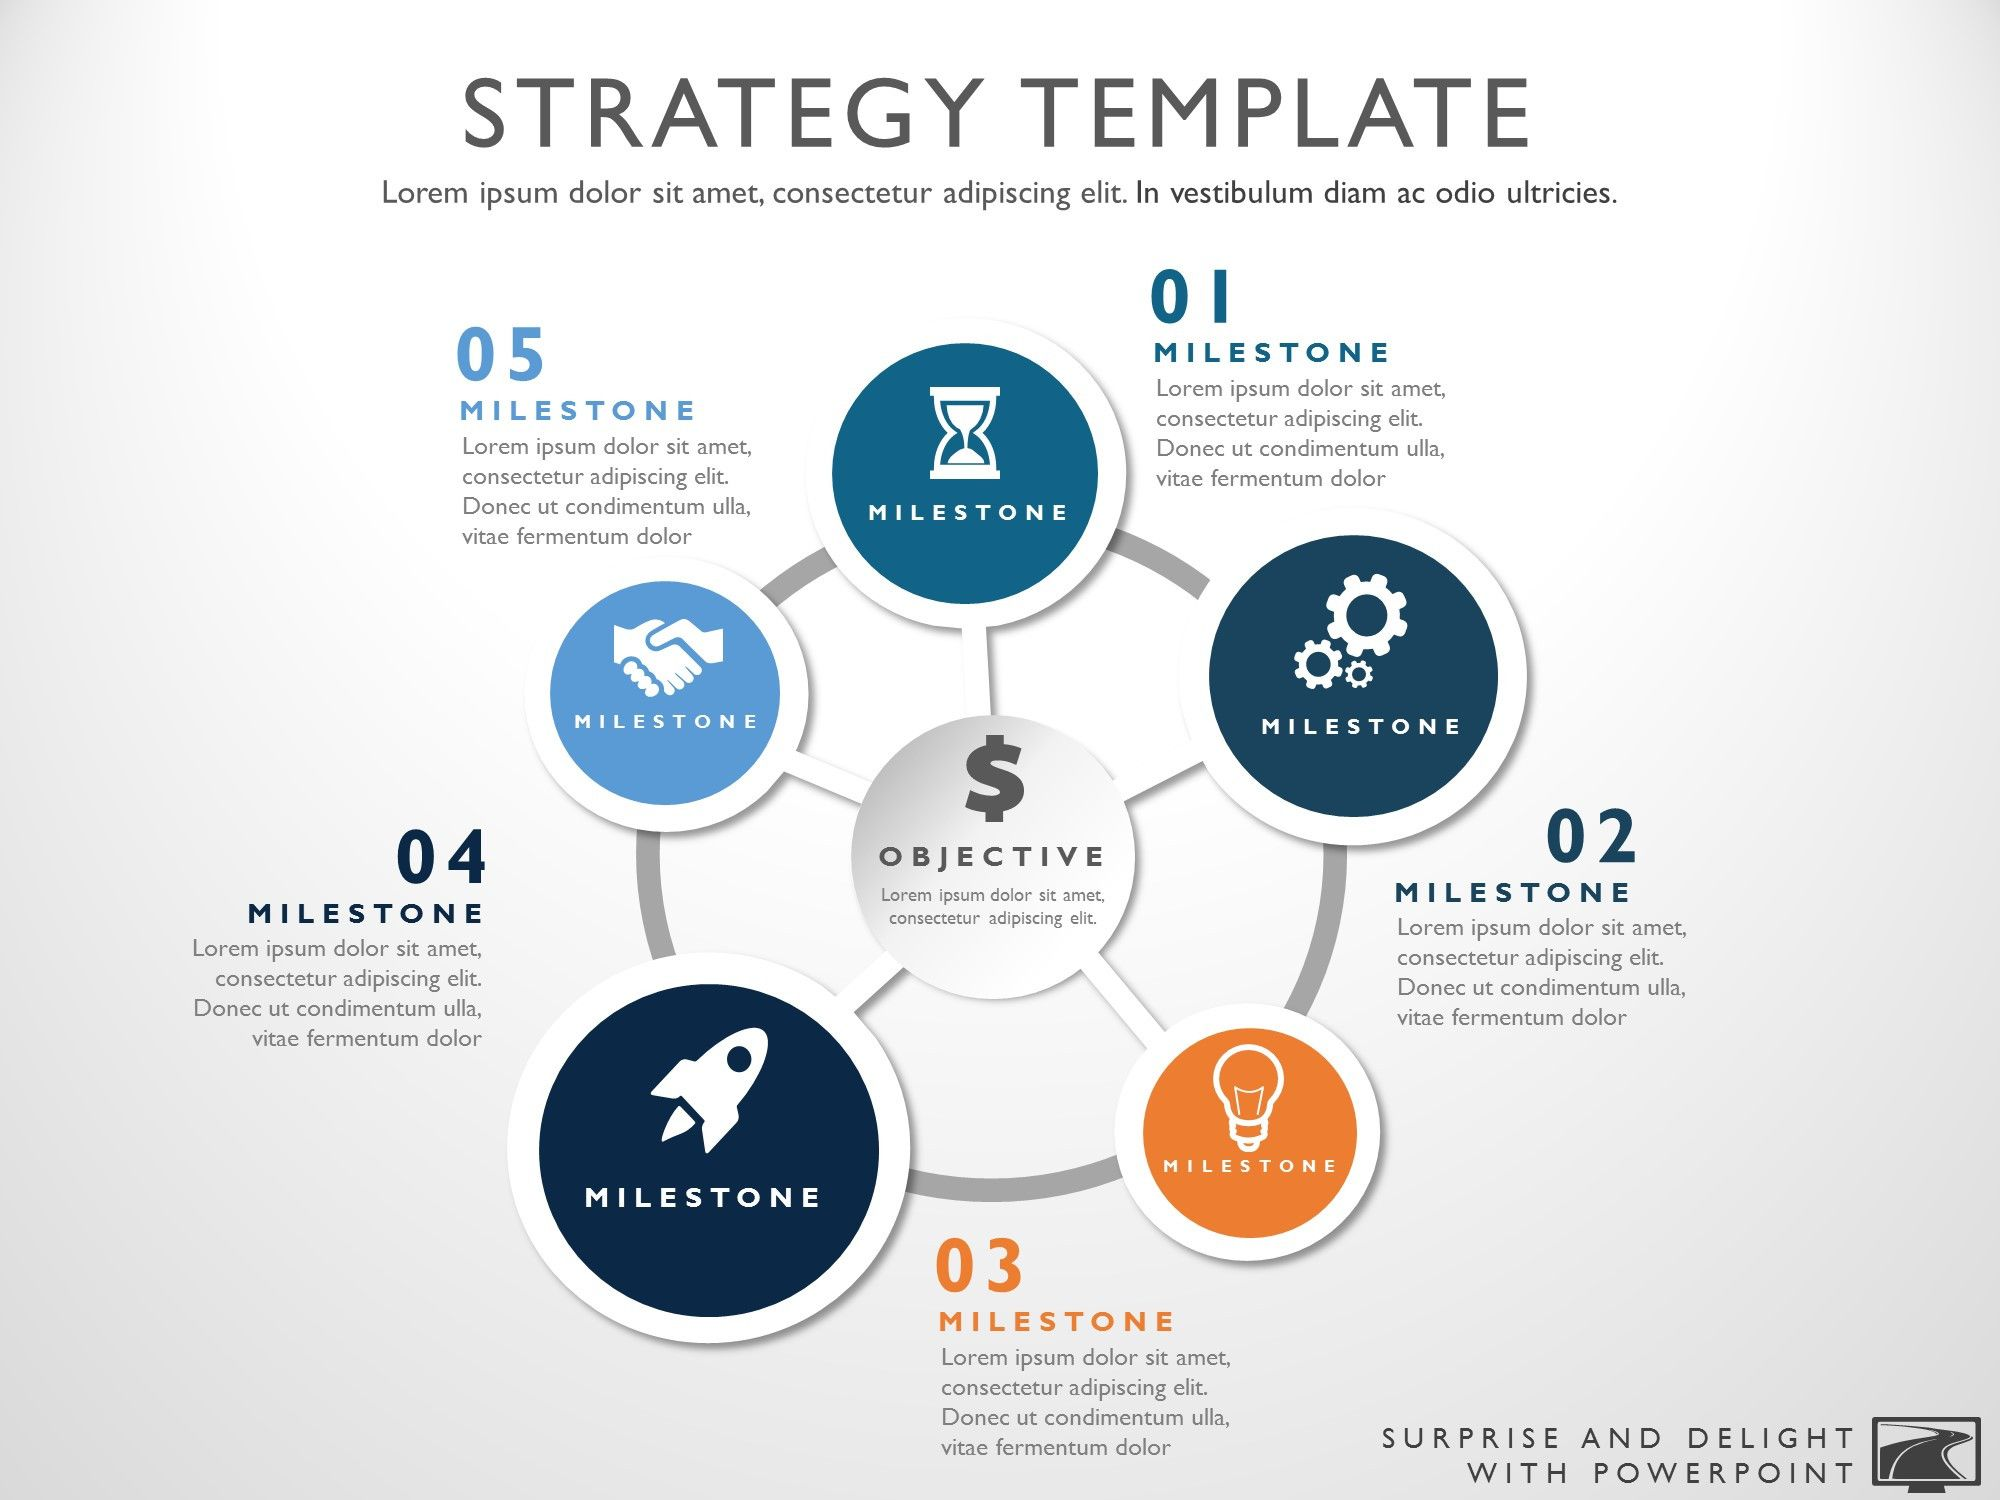 Product Strategy Template  My Product Roadmap  Social Innovation